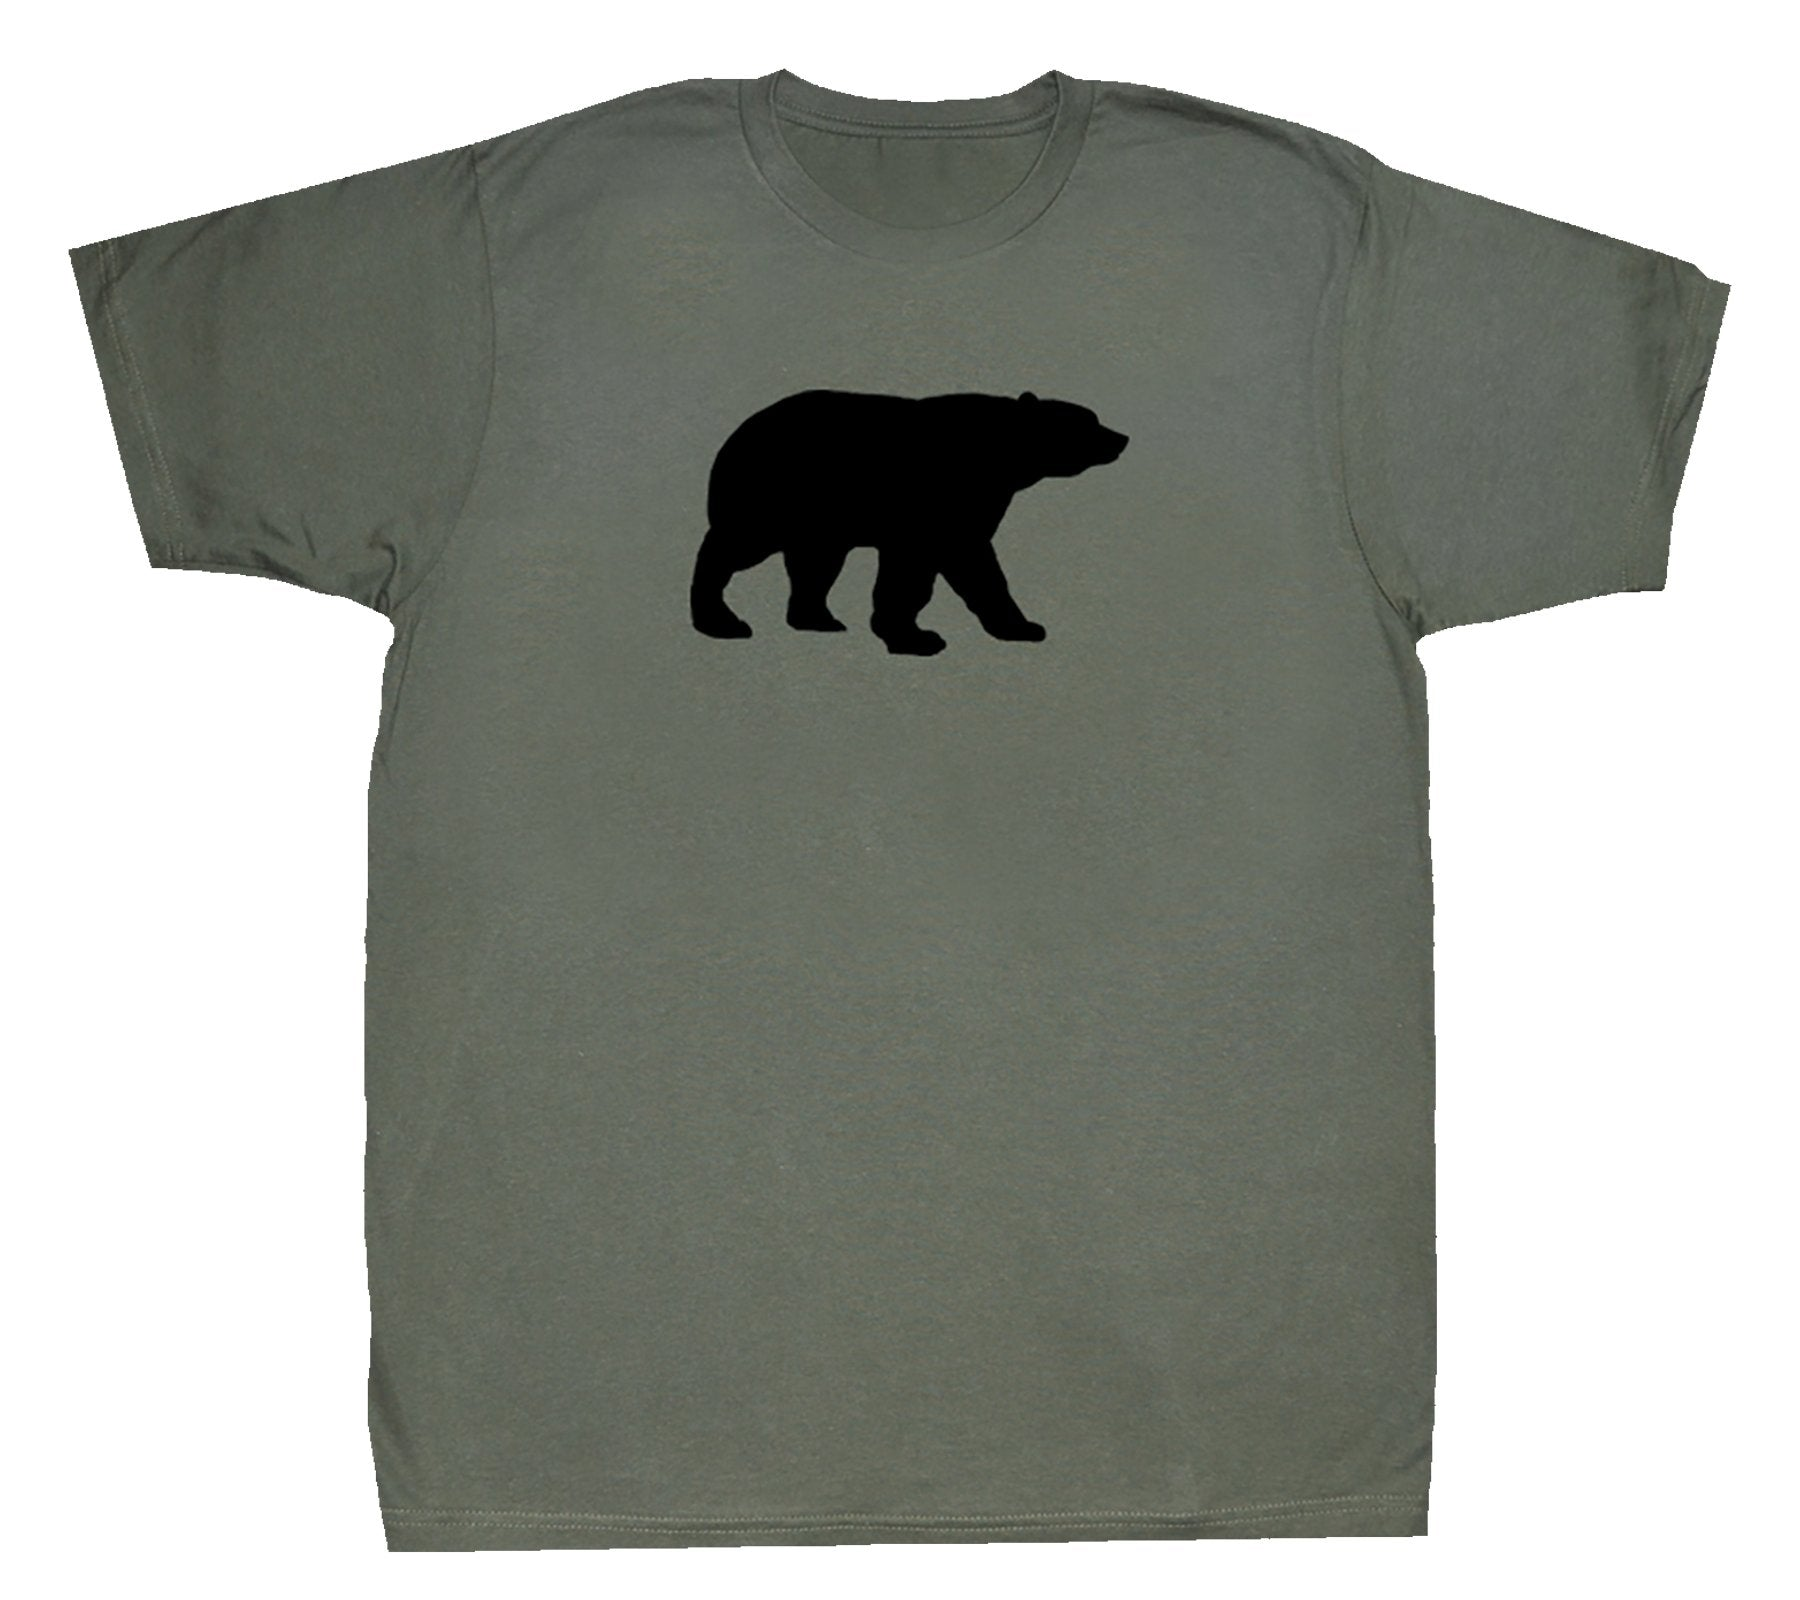 TS-576 // Black Bear